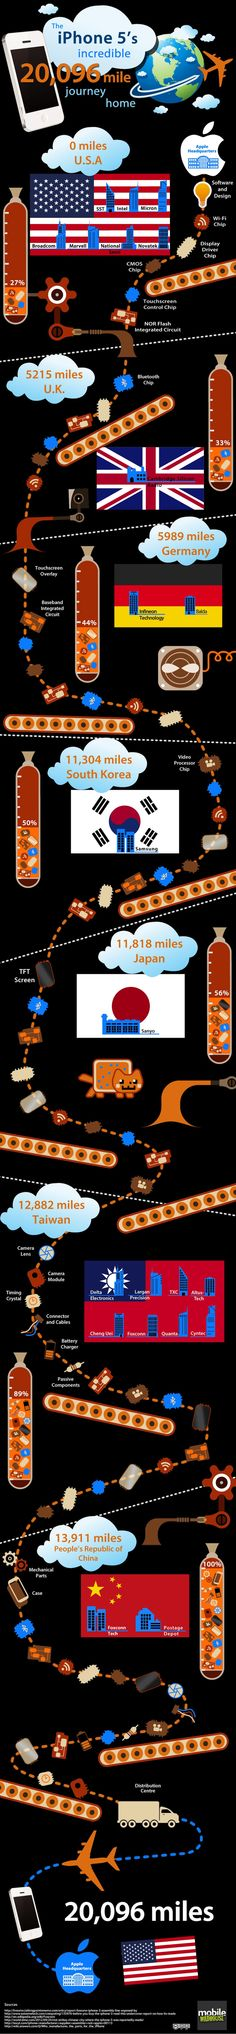 Whoa. iPhone 5 Travels 20,096 Miles Before Ending Up in Your Hands [INFOGRAPHIC]